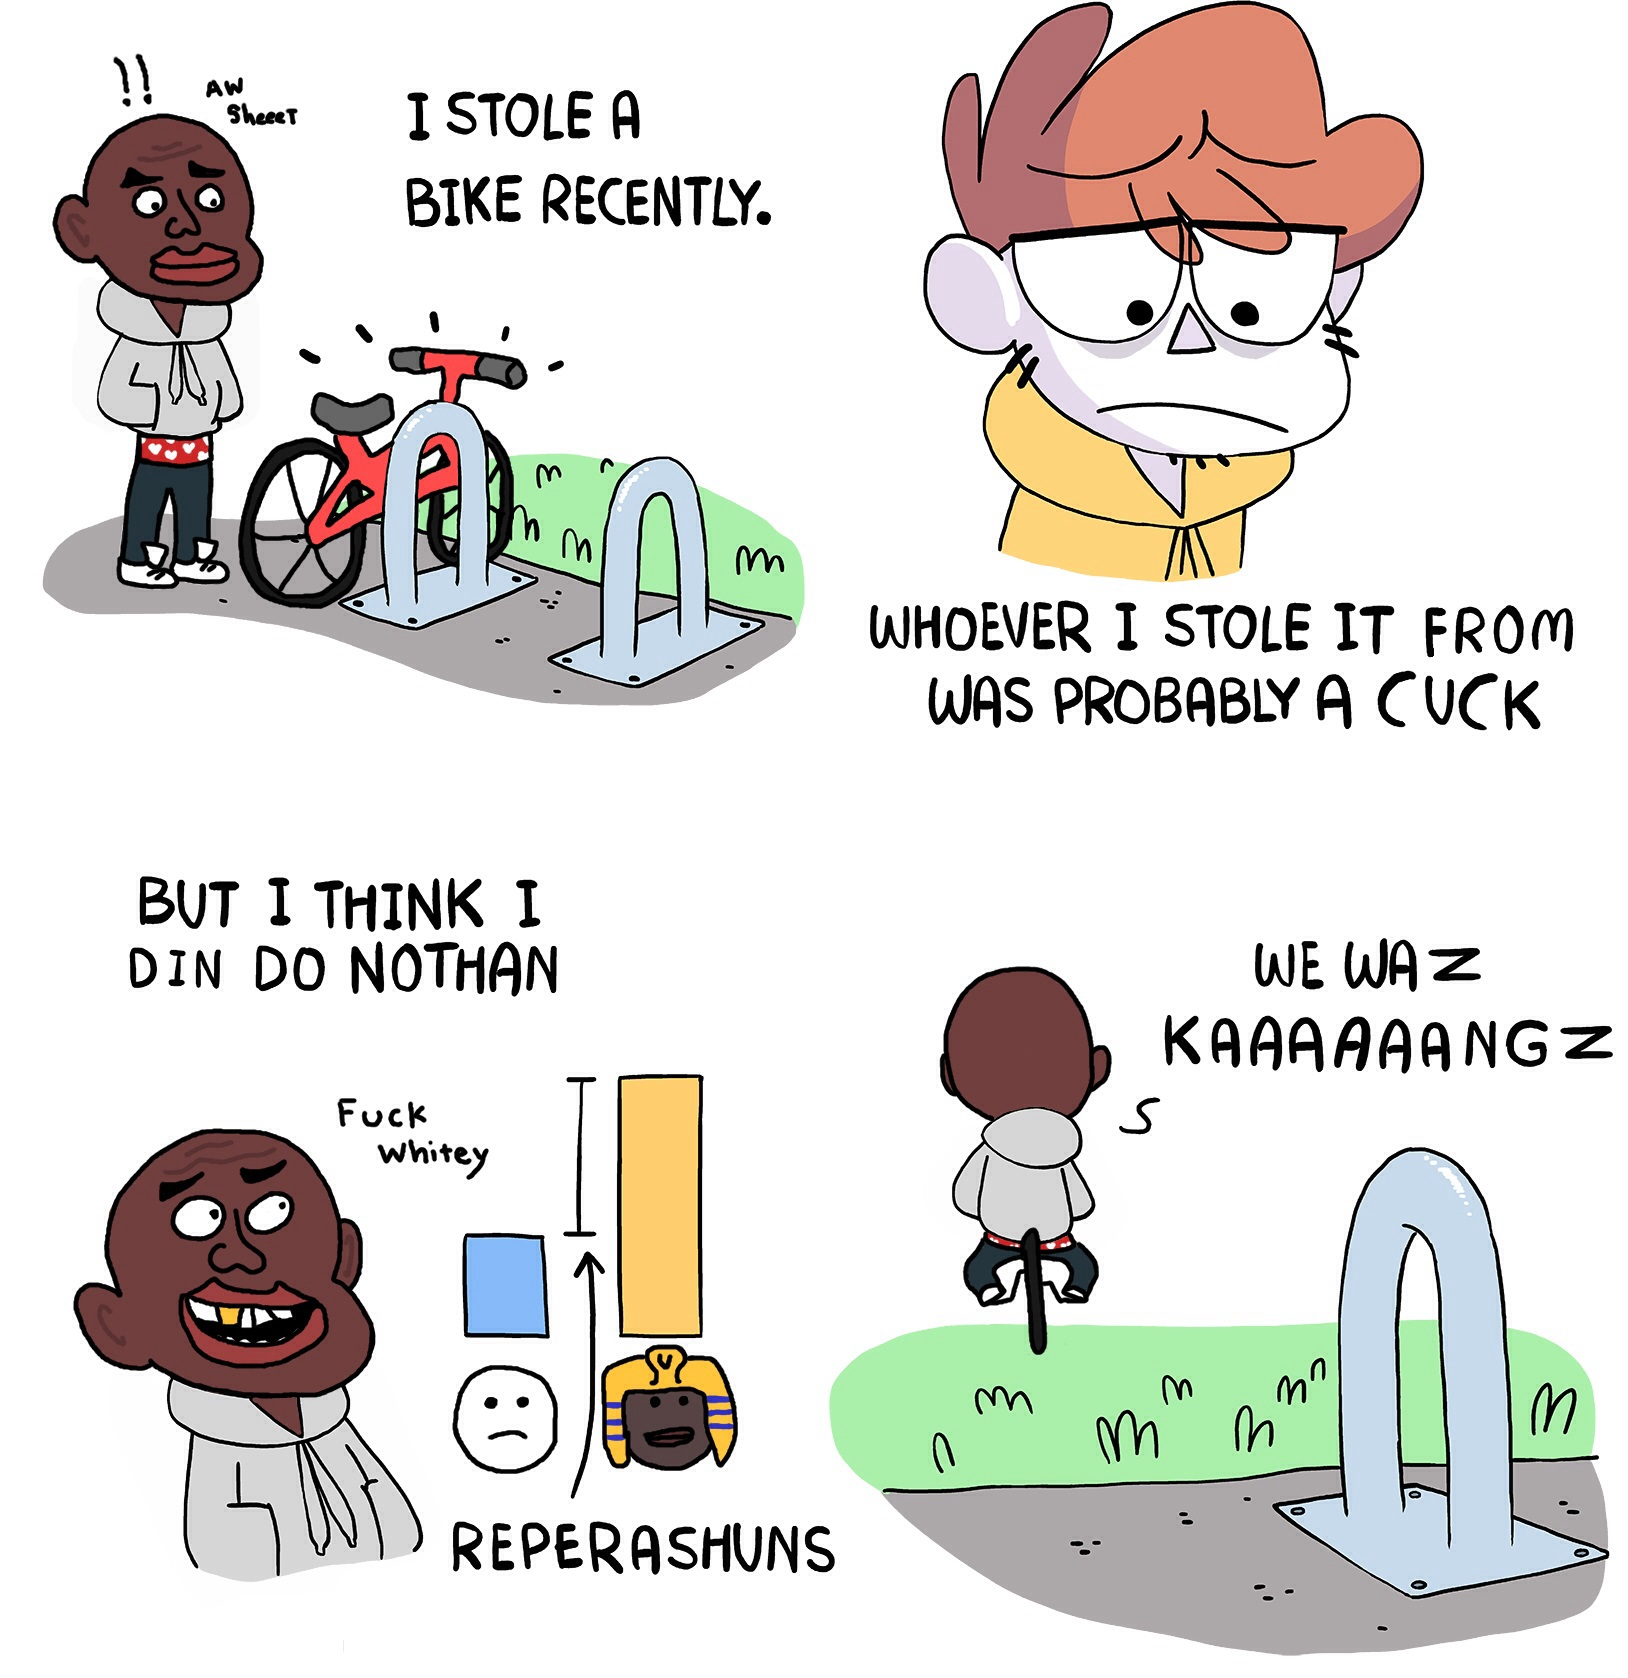 he dindu nuffin my bike got stolen recently know your meme